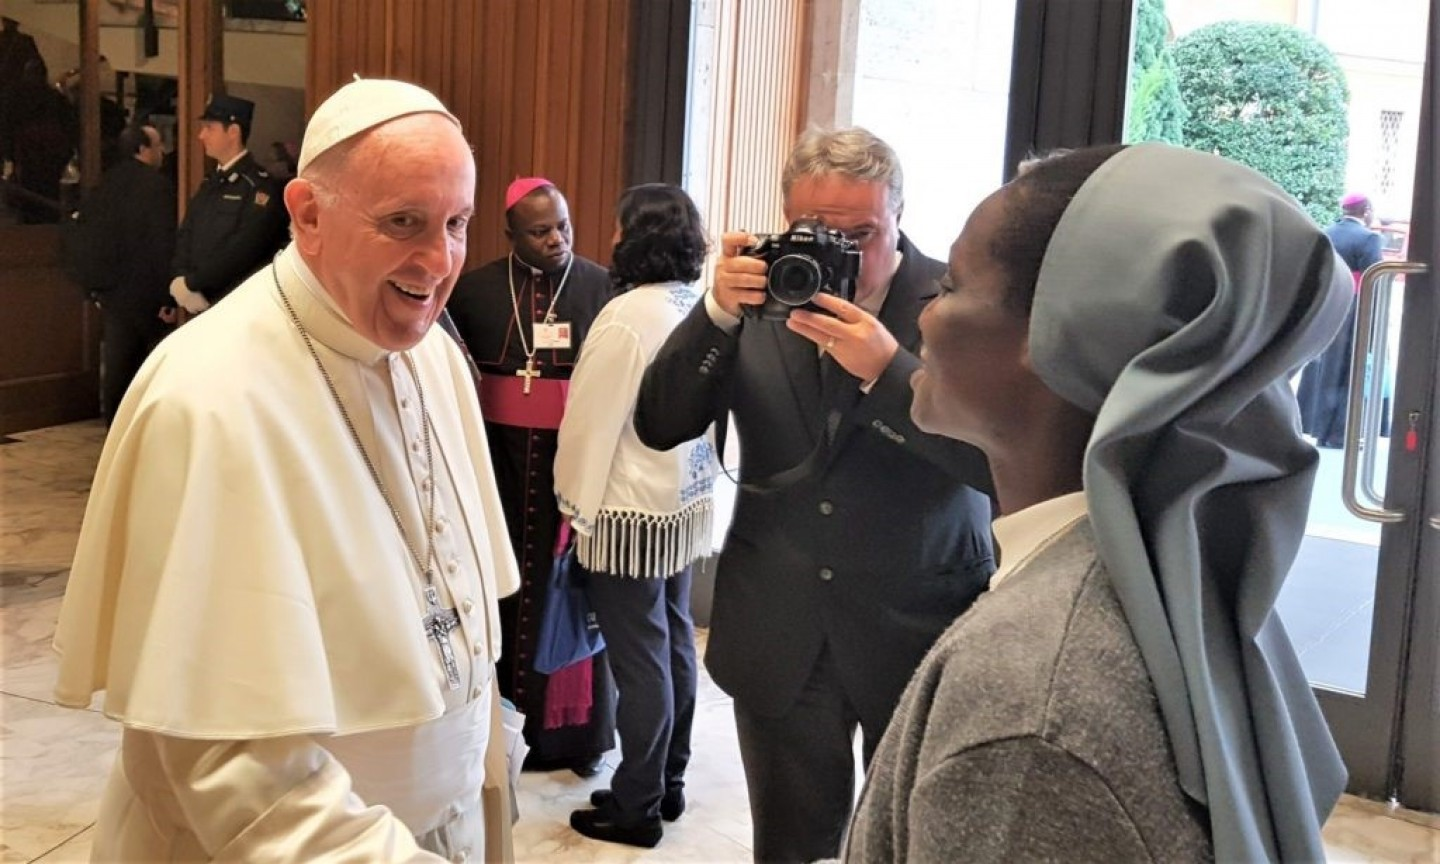 Paus Franciscus opening Synodaal proces